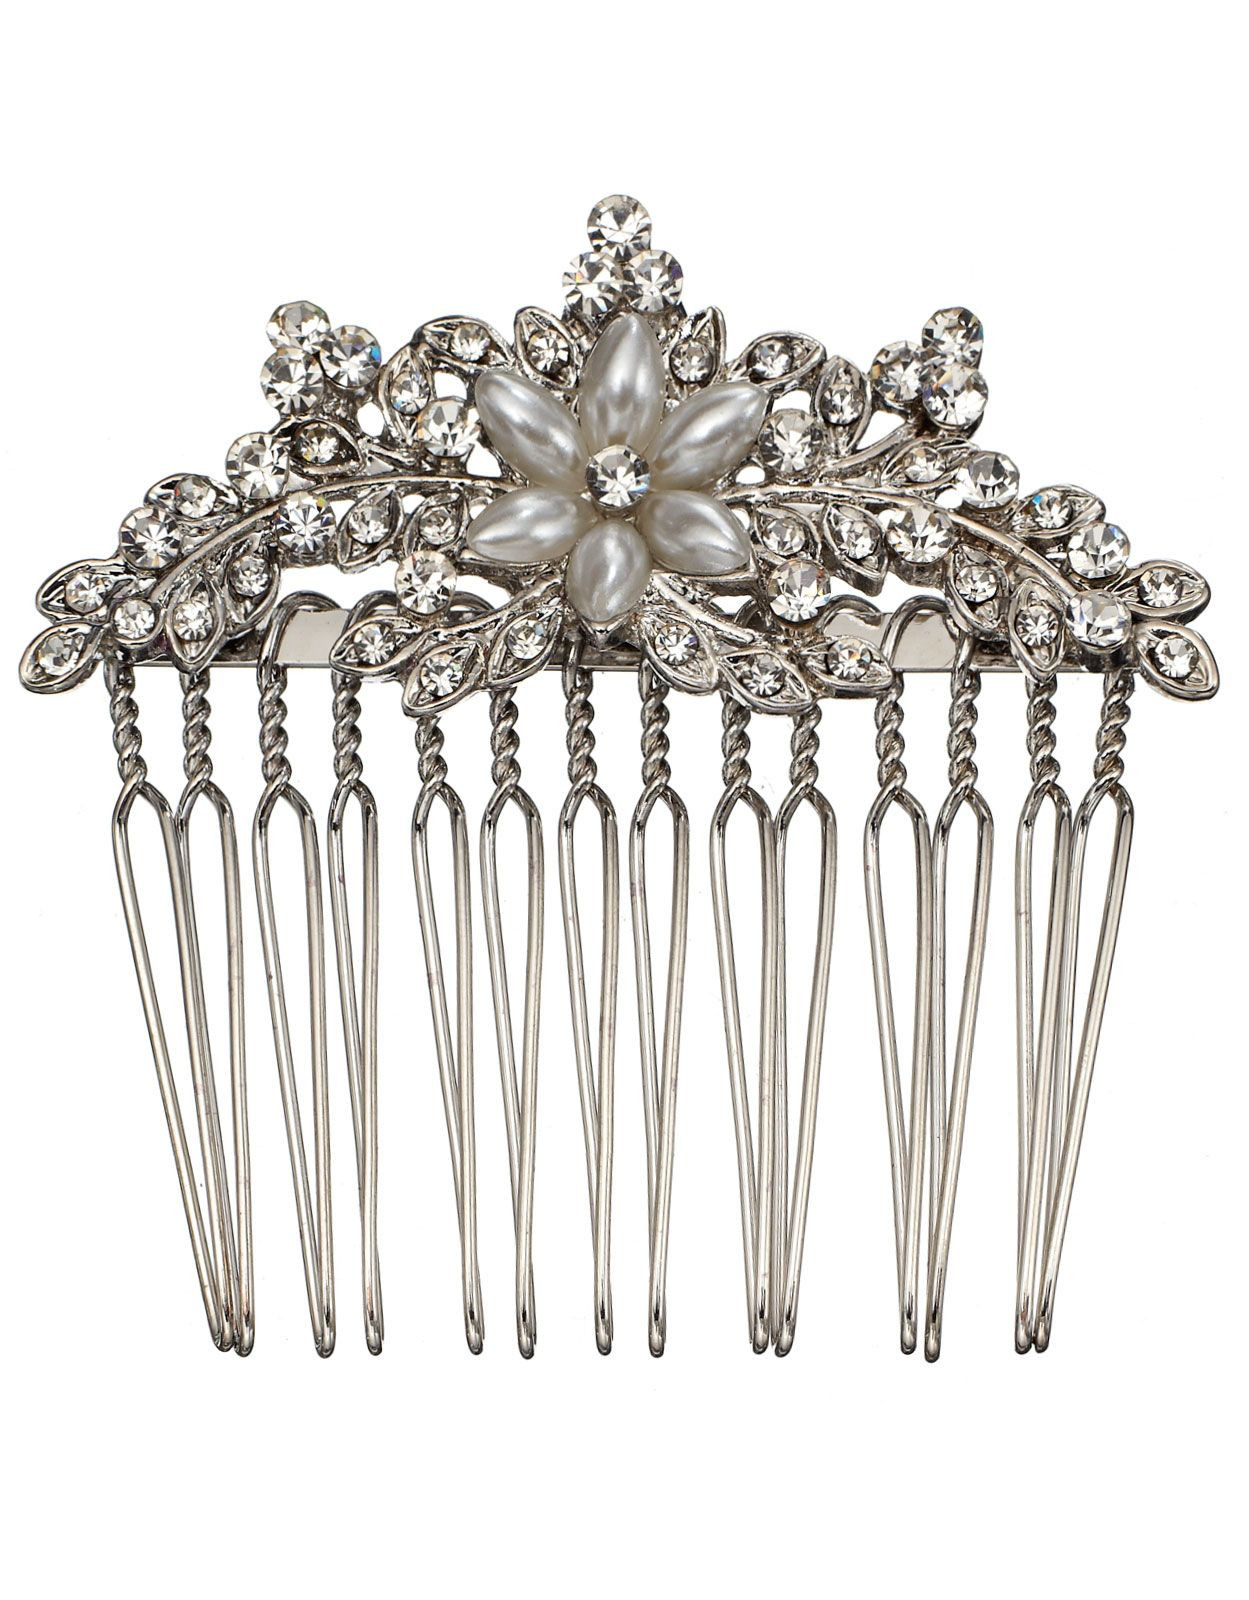 Scarlett Rose Crystal Comb | Clear | Accessorize http://uk.accessorize.com/view/product/uk_catalog/acc_5,acc_5.3/4860900800